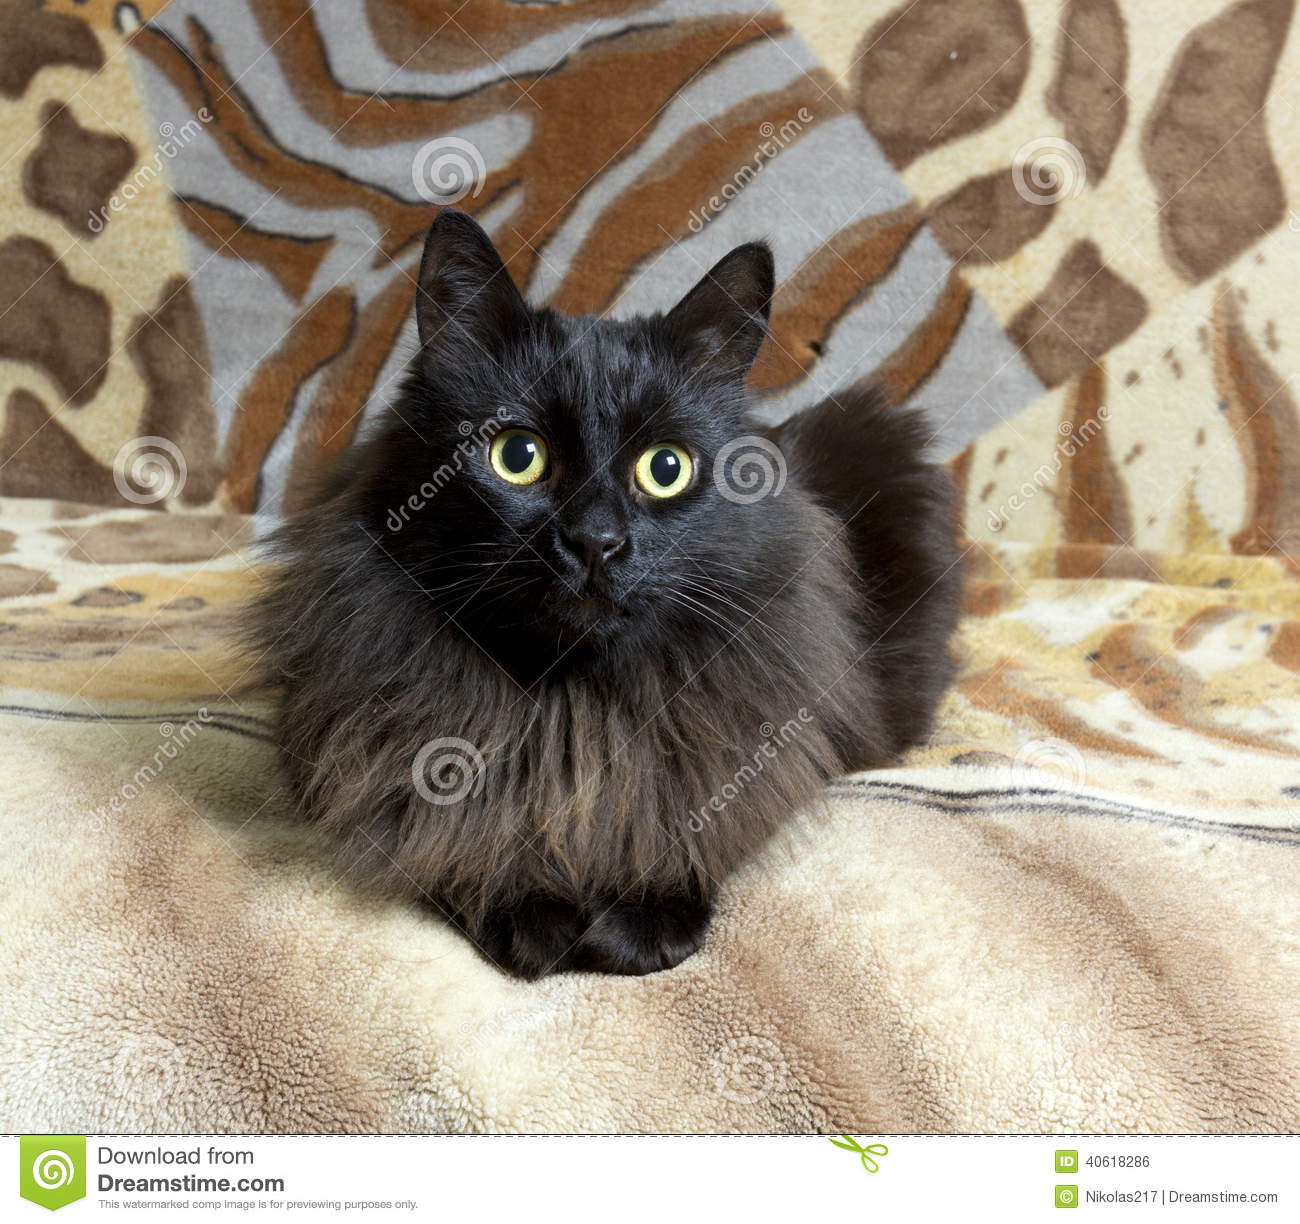 Centered cat stock photo  Image of definition, energy - 40618286